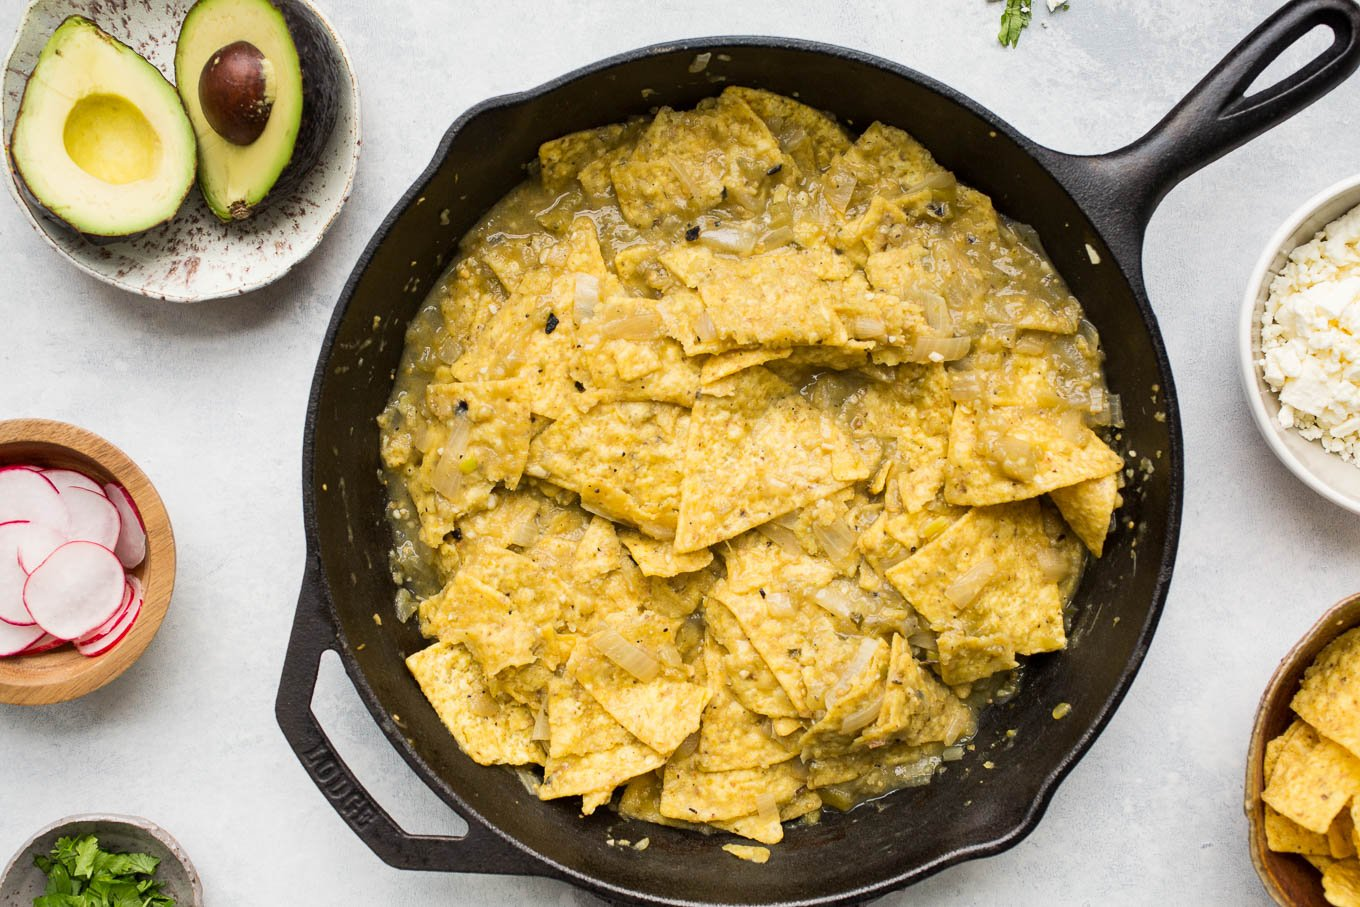 Chilaquiles Verdes with Fried Eggs (gluten-free) | saltedplains.com